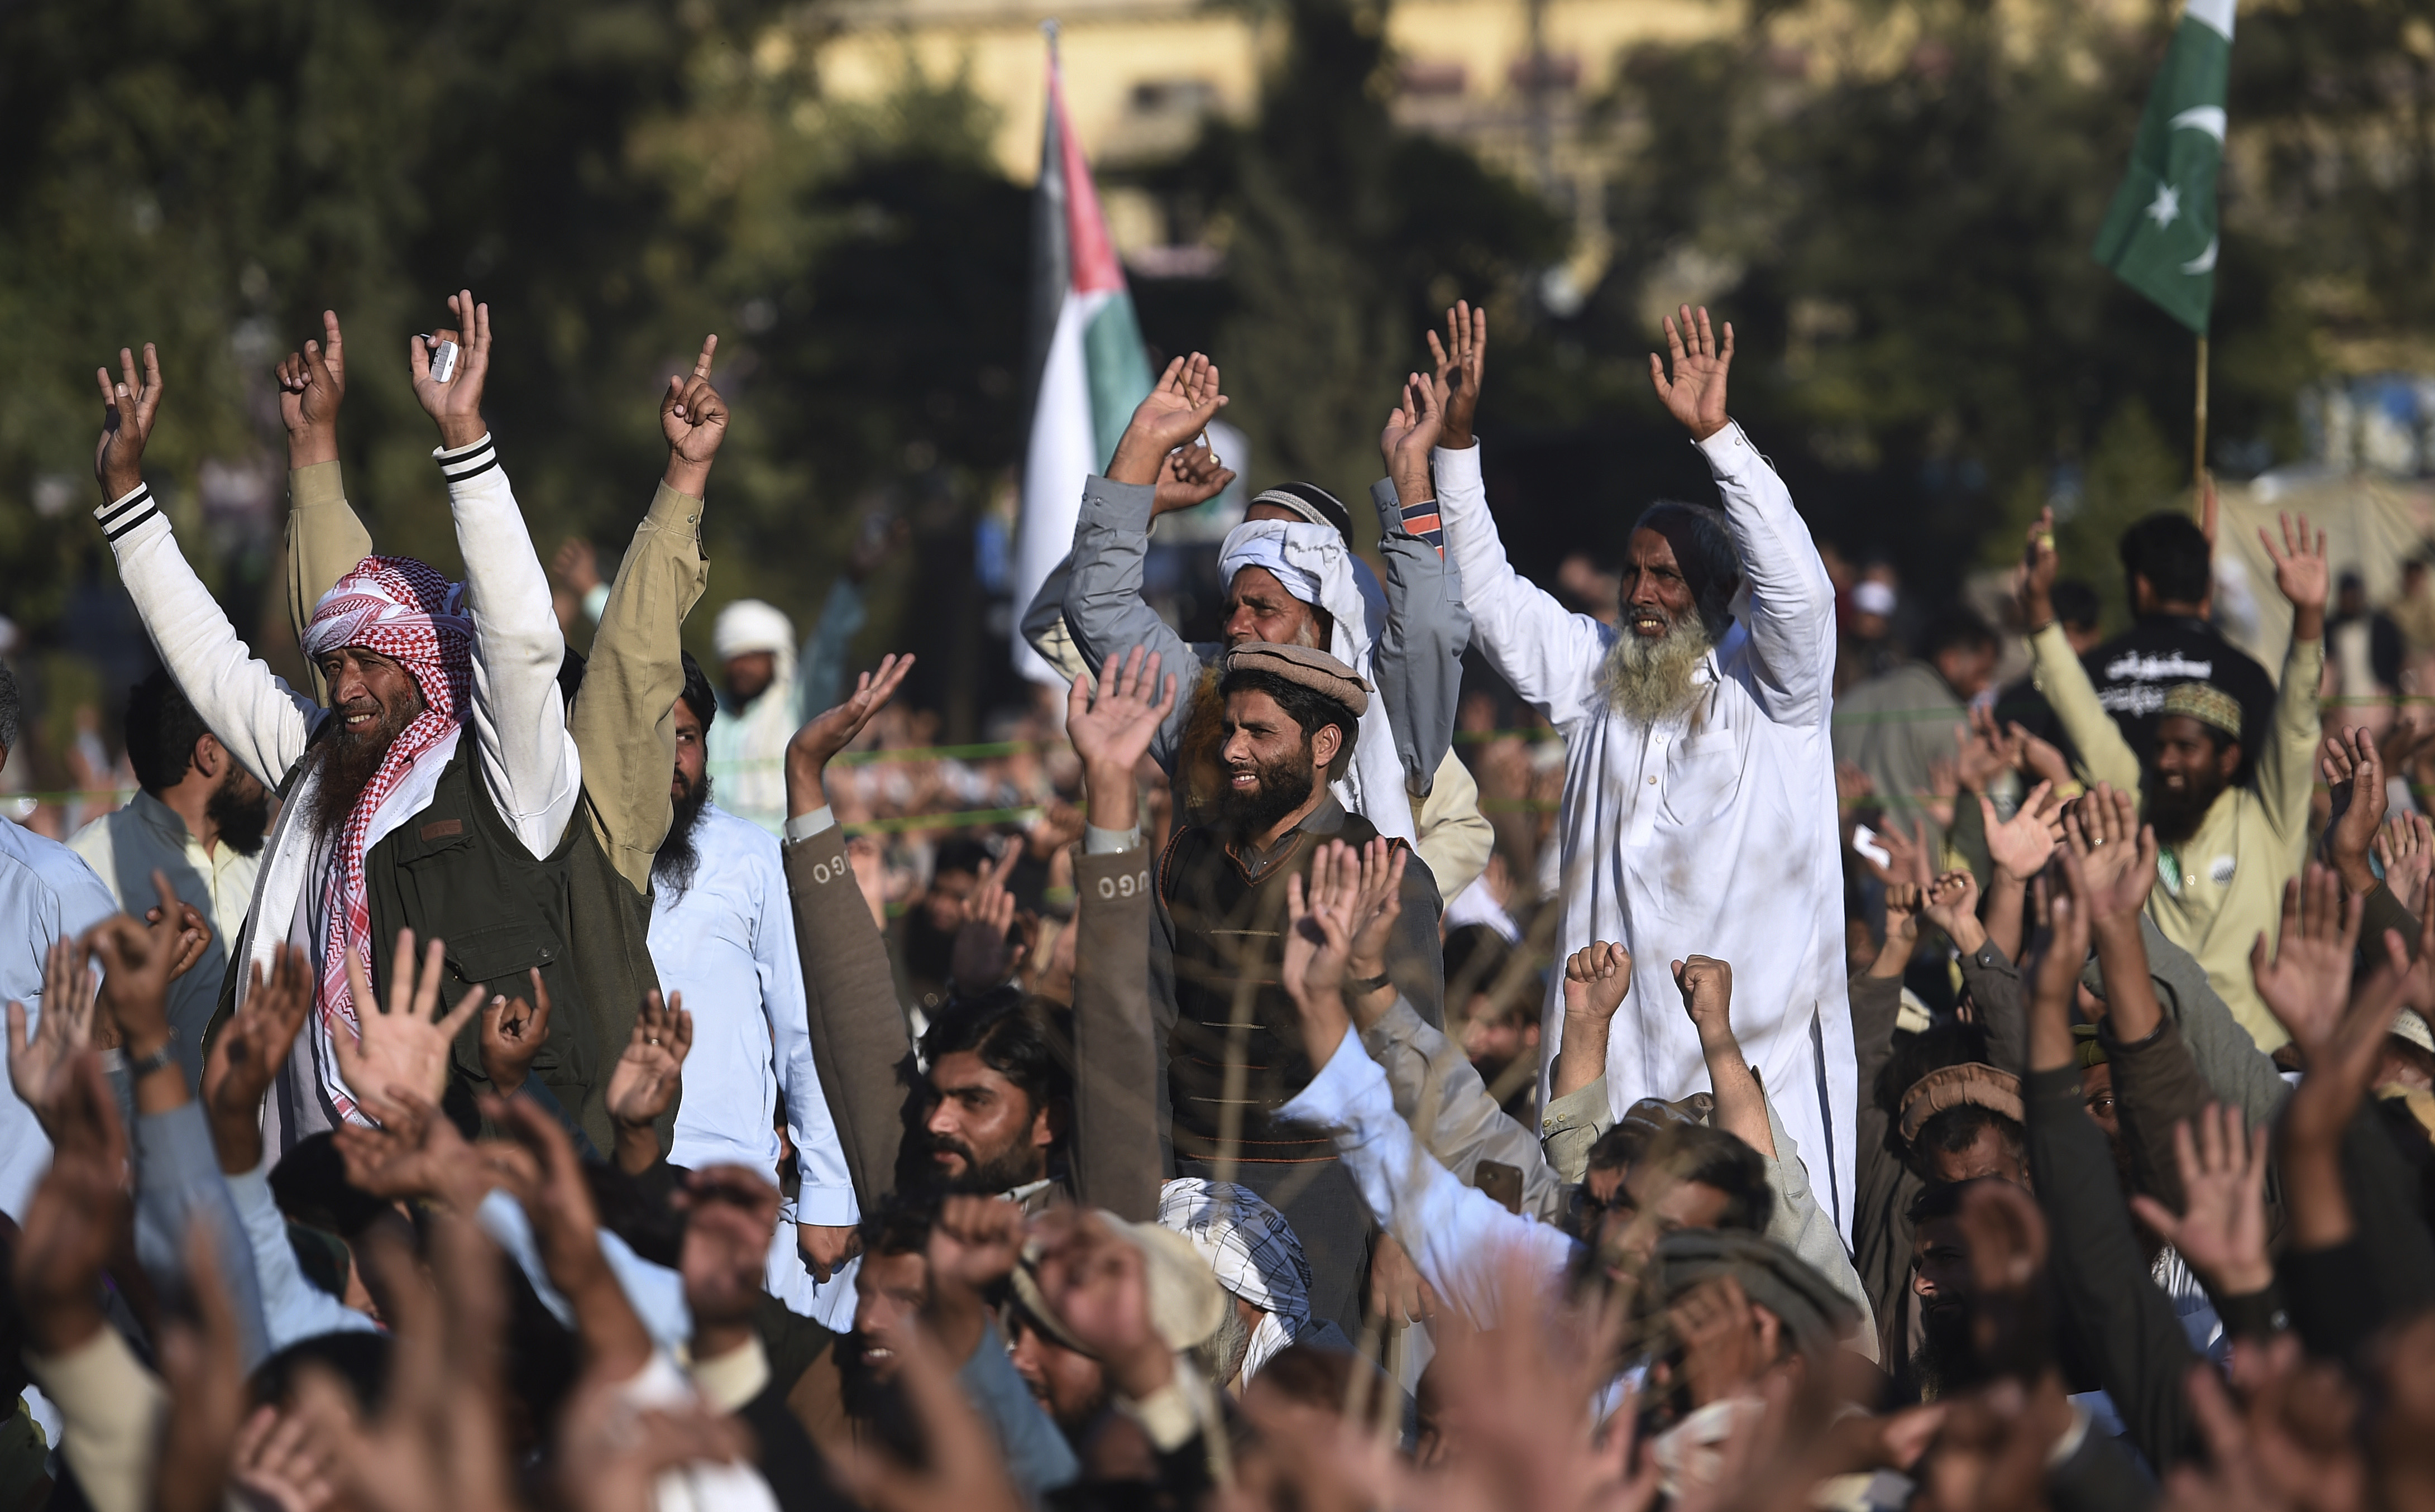 Supporters of the Pakistan Defense Council chant slogans at a rally against America, in Rawalpindi, Pakistan, Dec. 29, 2017. The Palestinian envoy attended the rally with Hafiz Saeed, the head of the hard-line Jamaat-ud-Dawa movement and a suspected ...